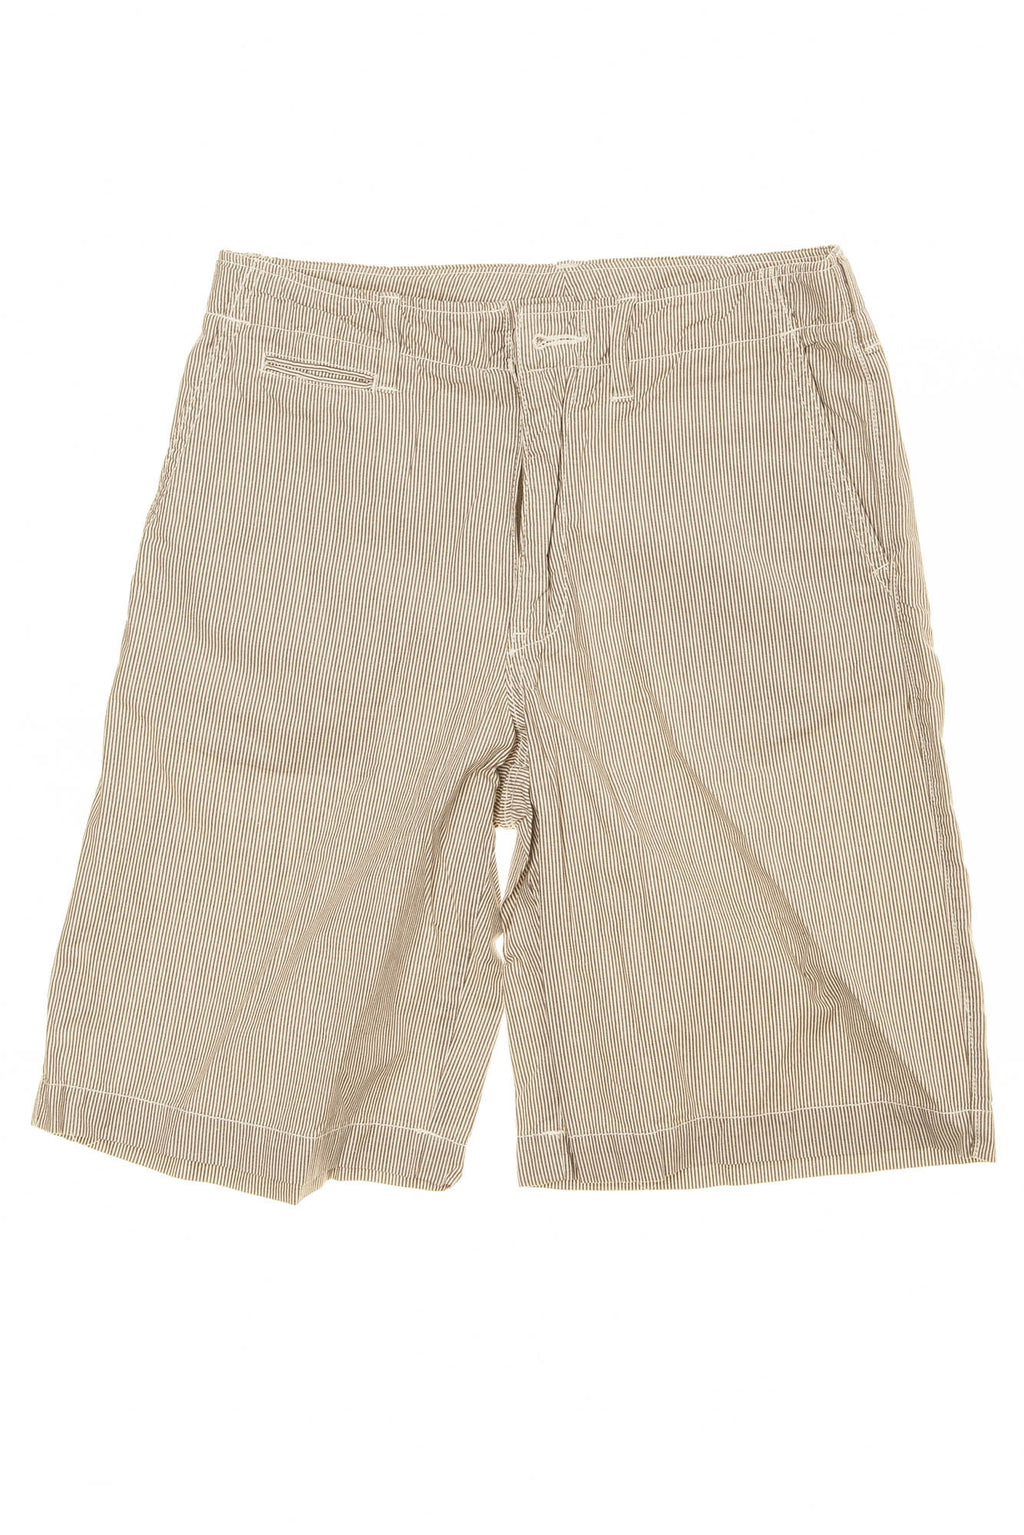 GapKids - Brown and White Striped Cargo Shorts - 14